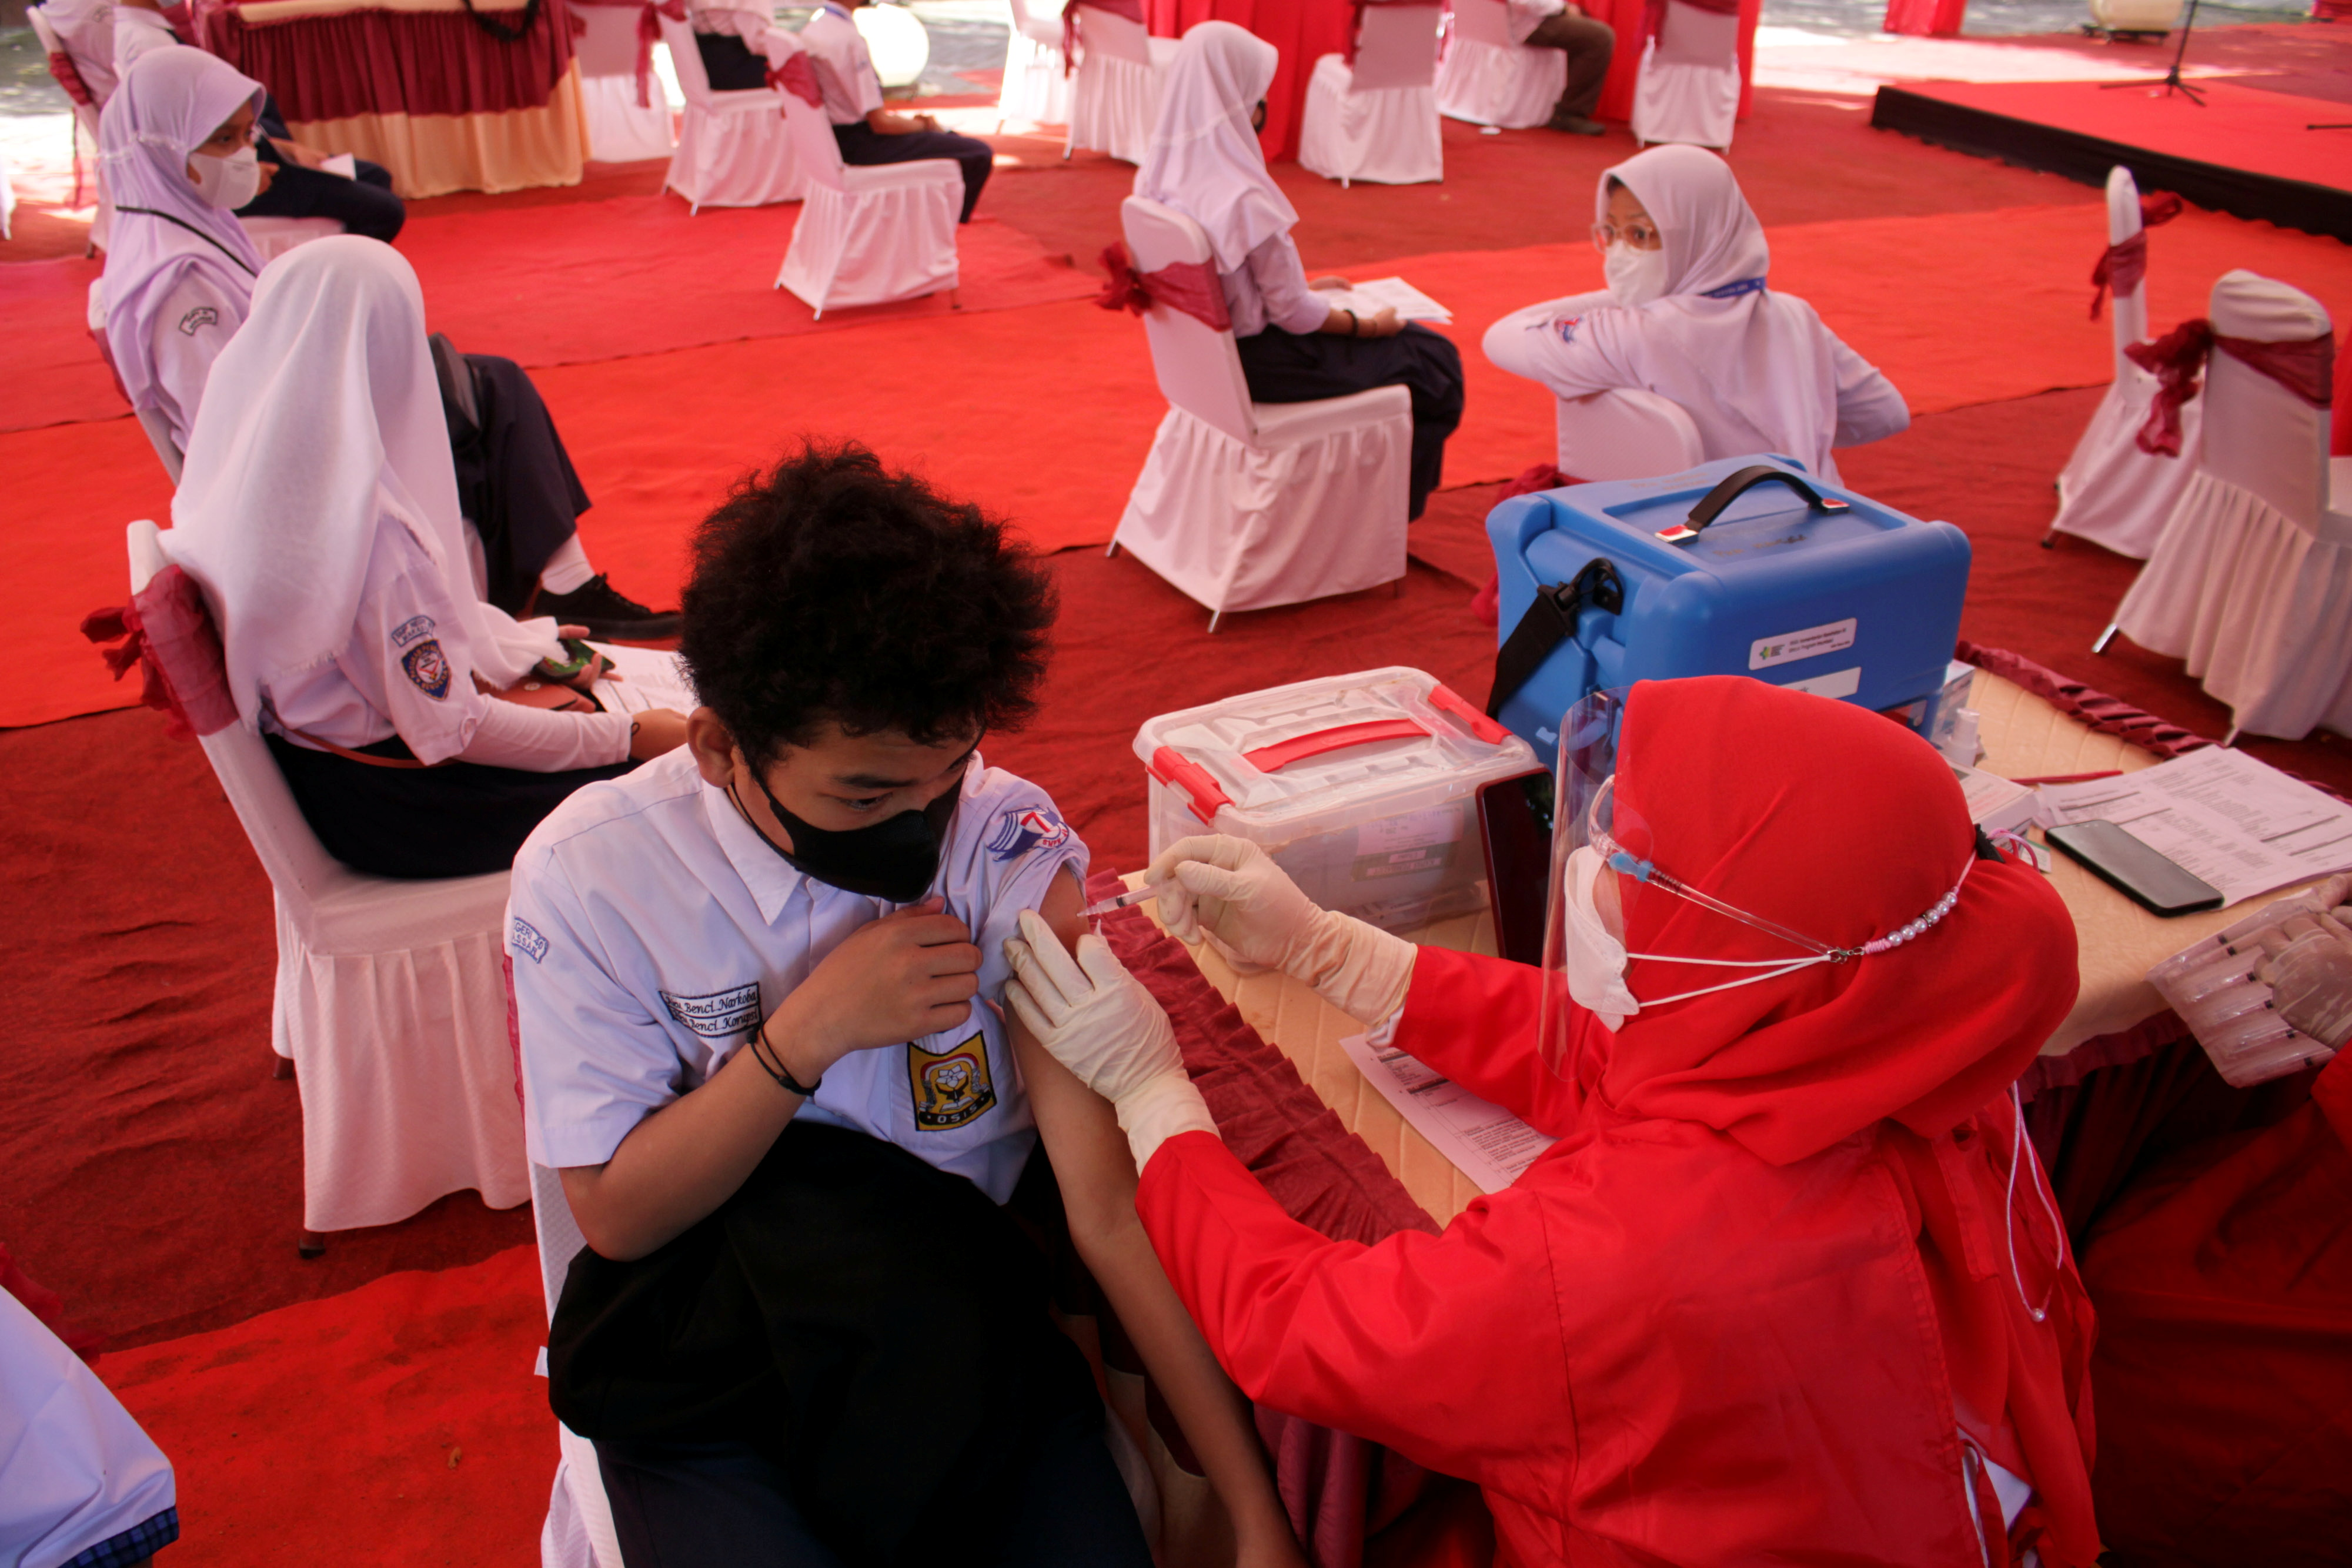 A student receives a coronavirus disease (COVID-19) vaccine during a massive student vaccination program amid a sharp rise in COVID-19 cases in Makassar, South Sulawesi province, Indonesia, July 14, 2021.  Antara Foto / Arnas Padda / via REUTERS